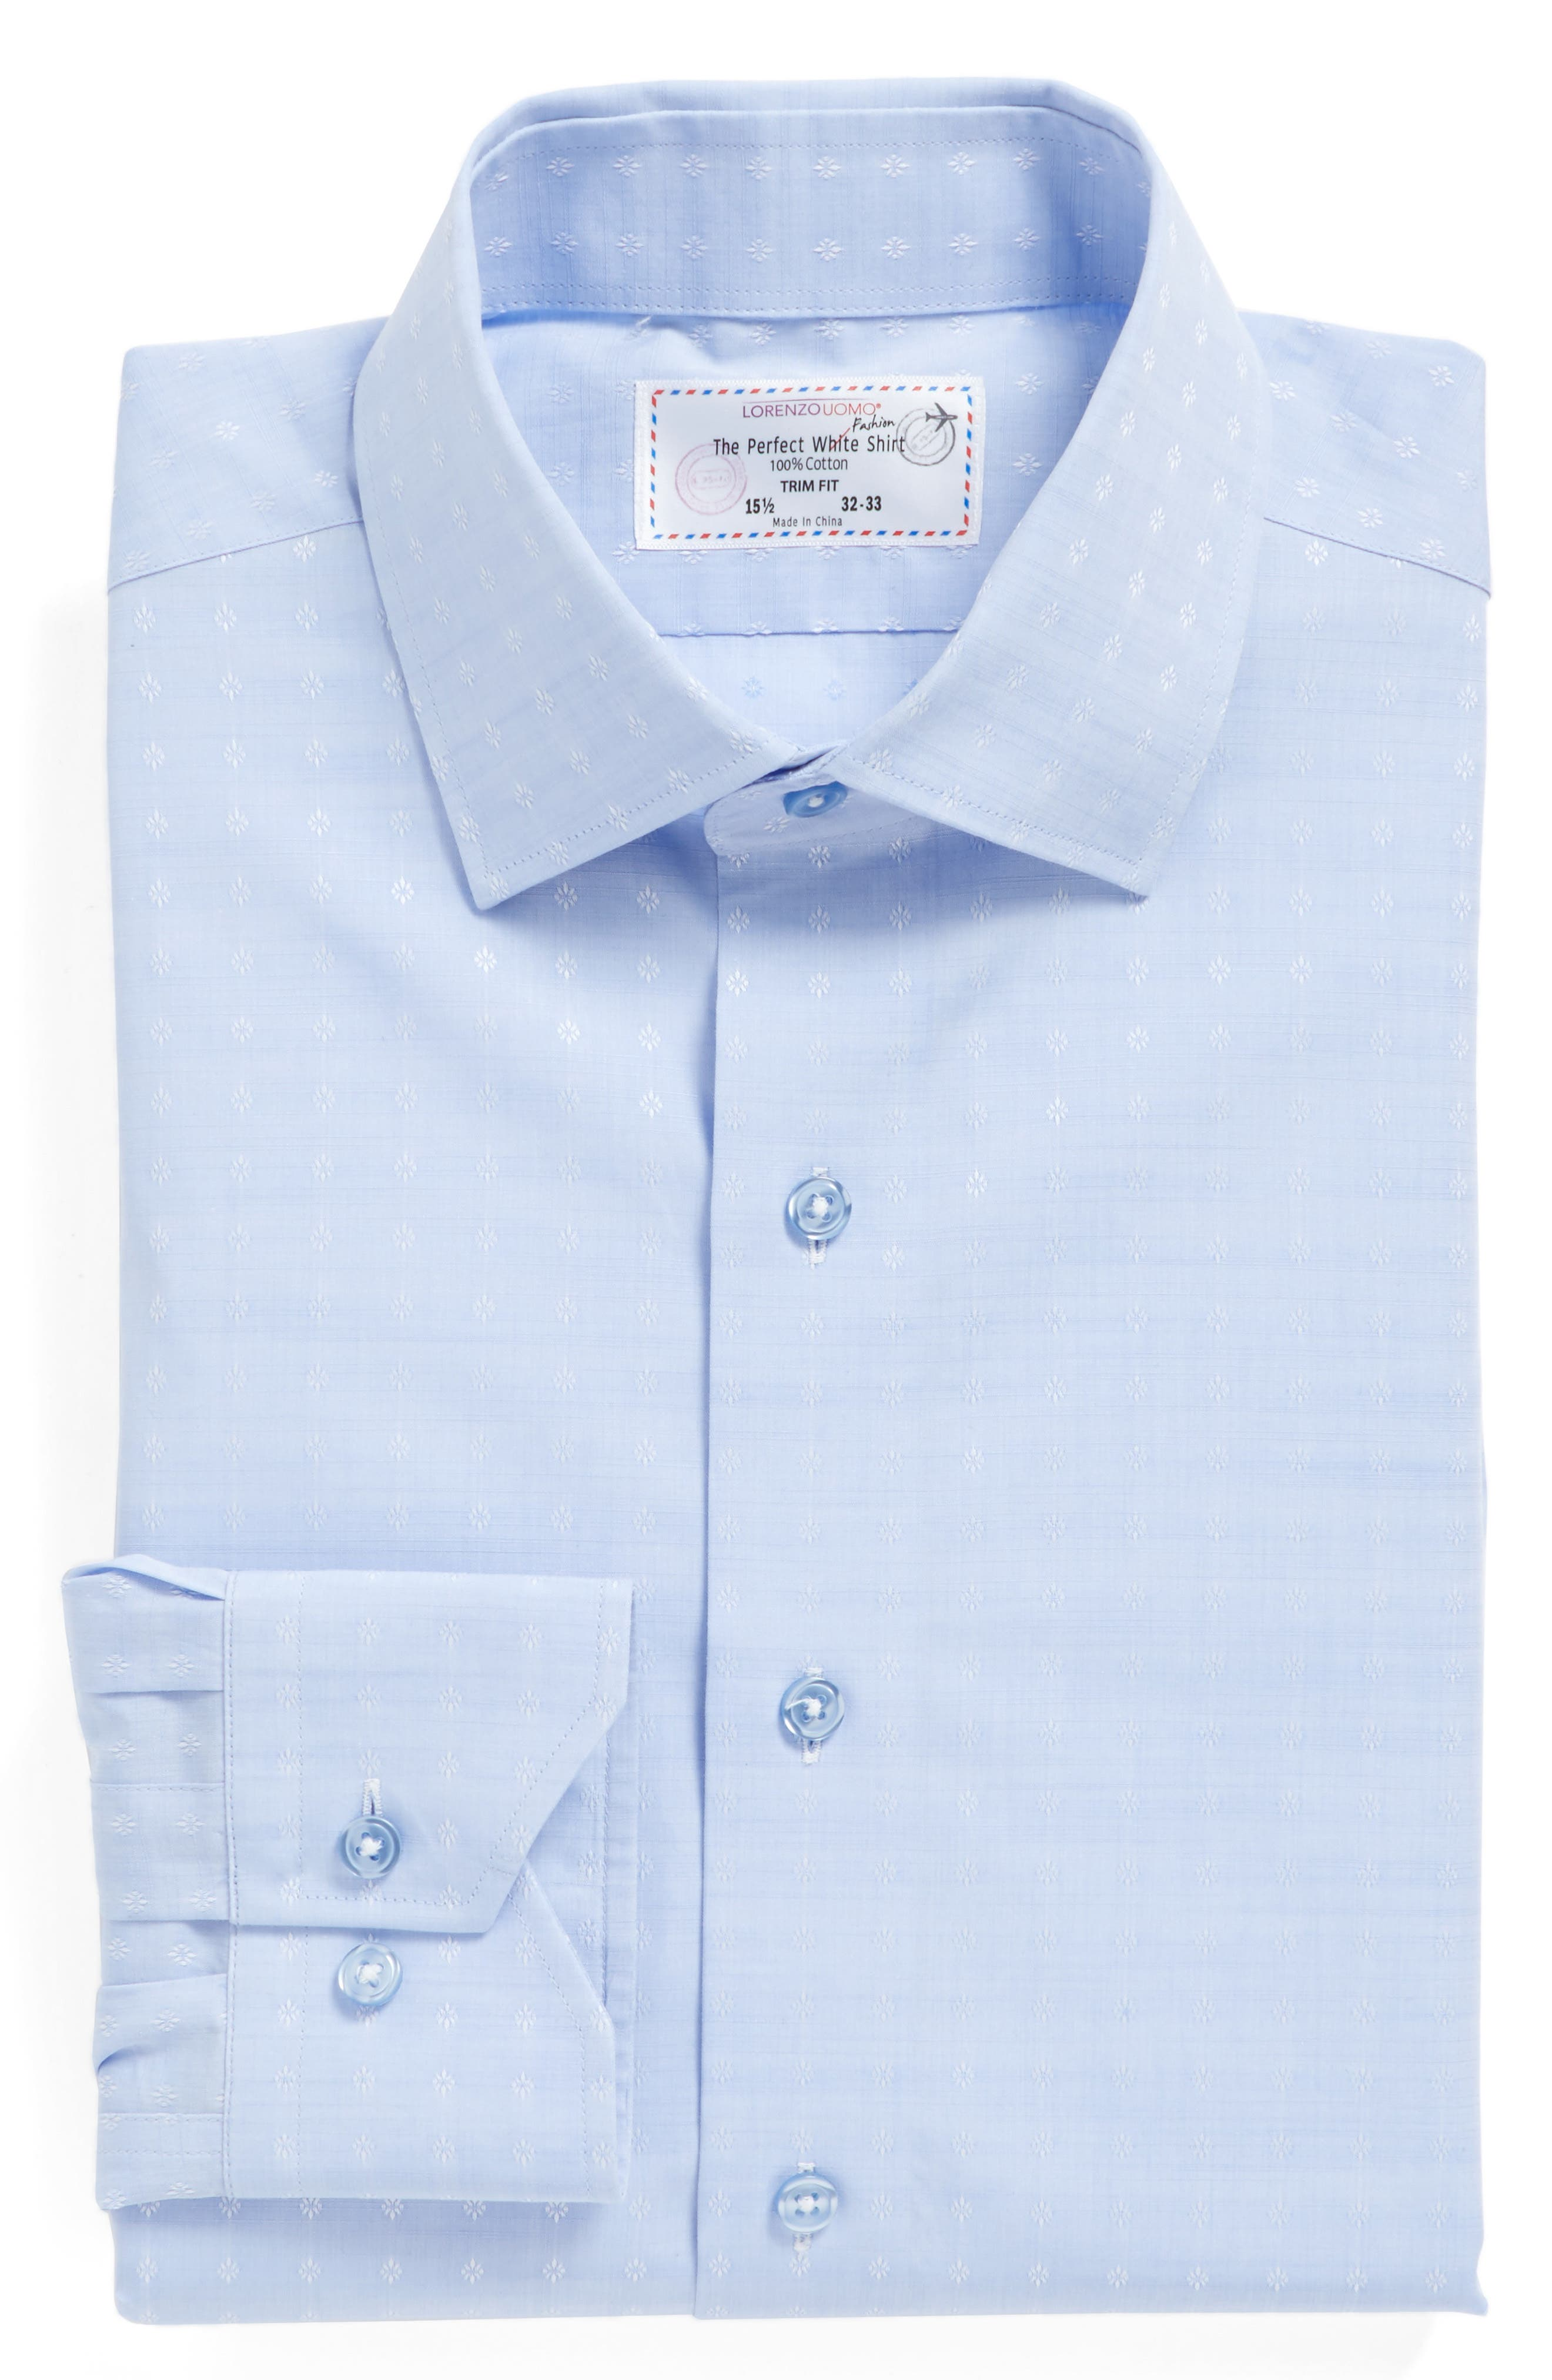 LORENZO UOMO Trim Fit Floral Dress Shirt